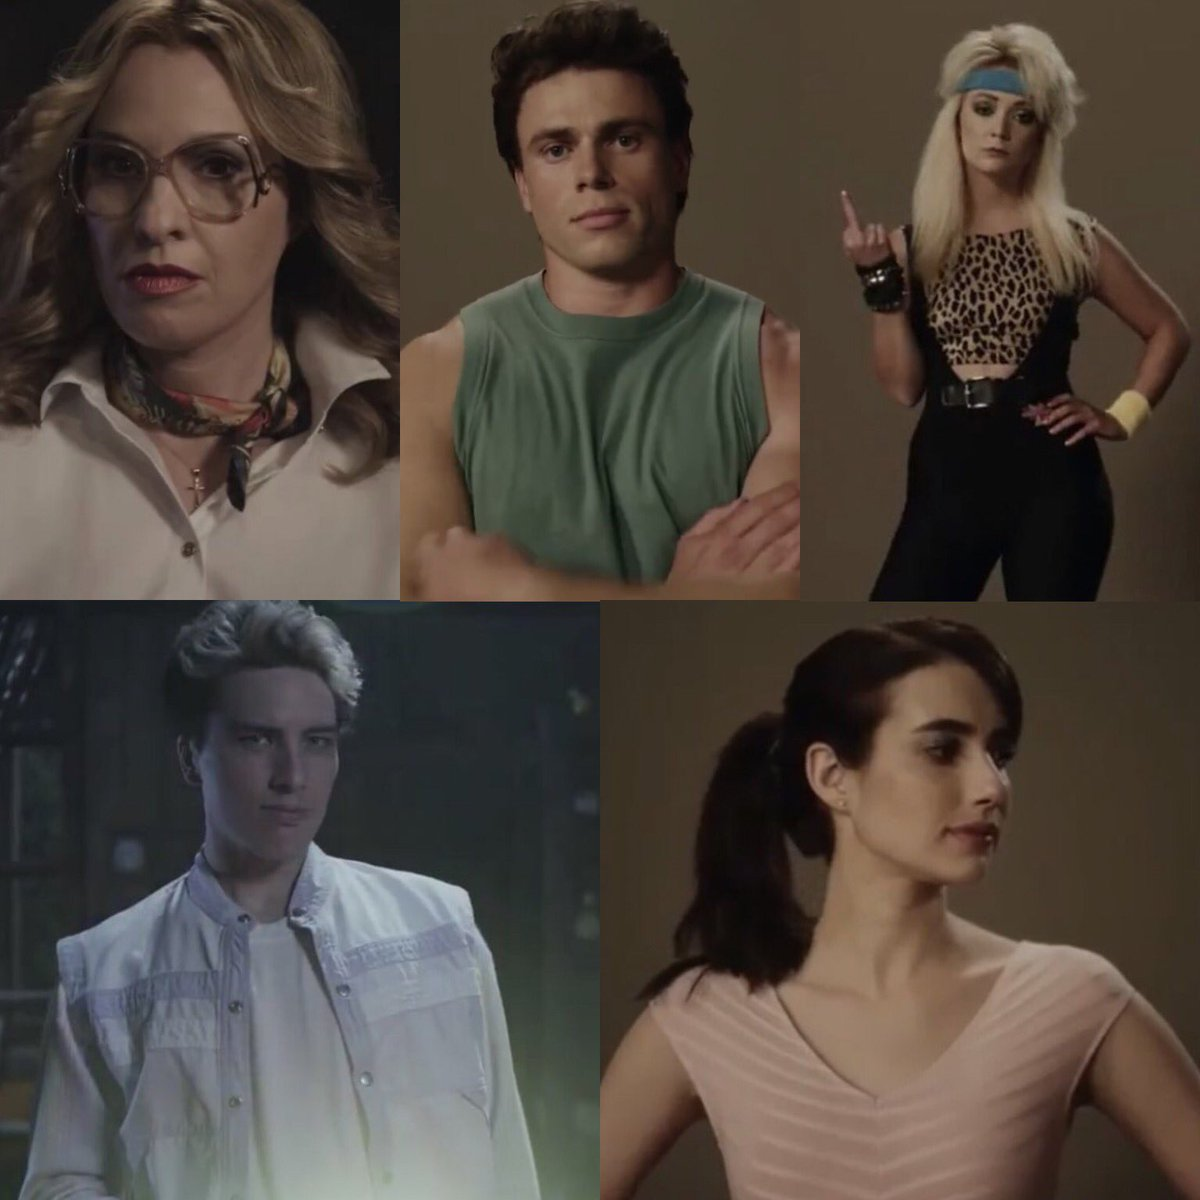 The Main Cast of #AHS1984